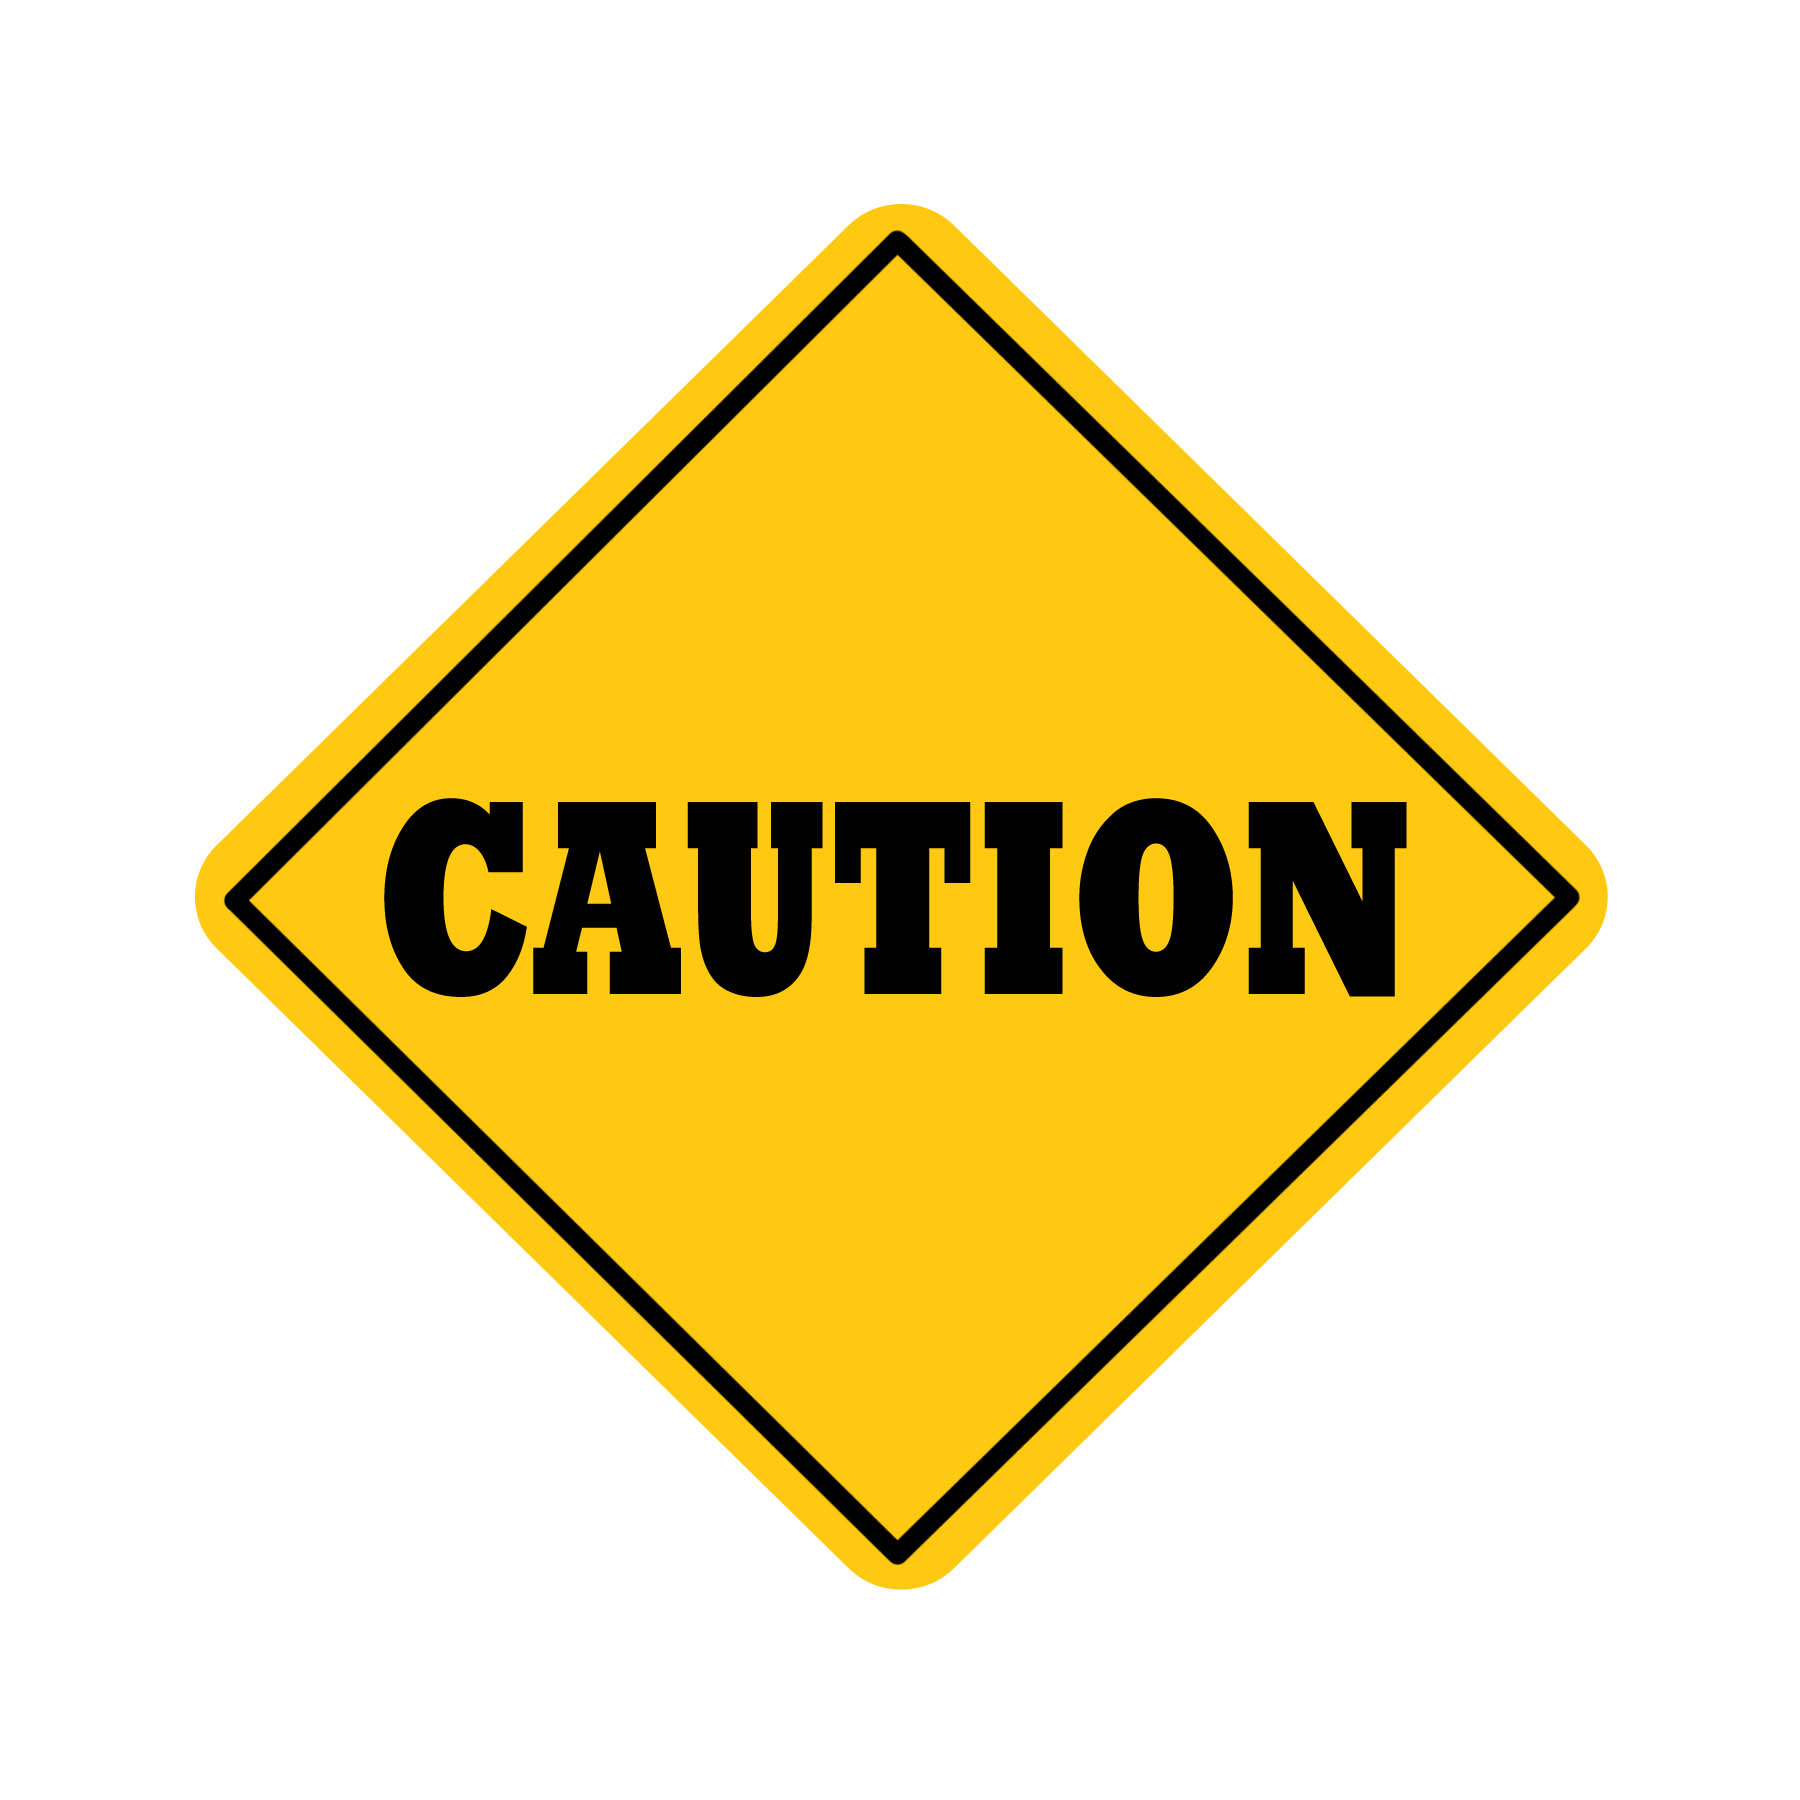 18 caution sign images free cliparts that you can download to you ...